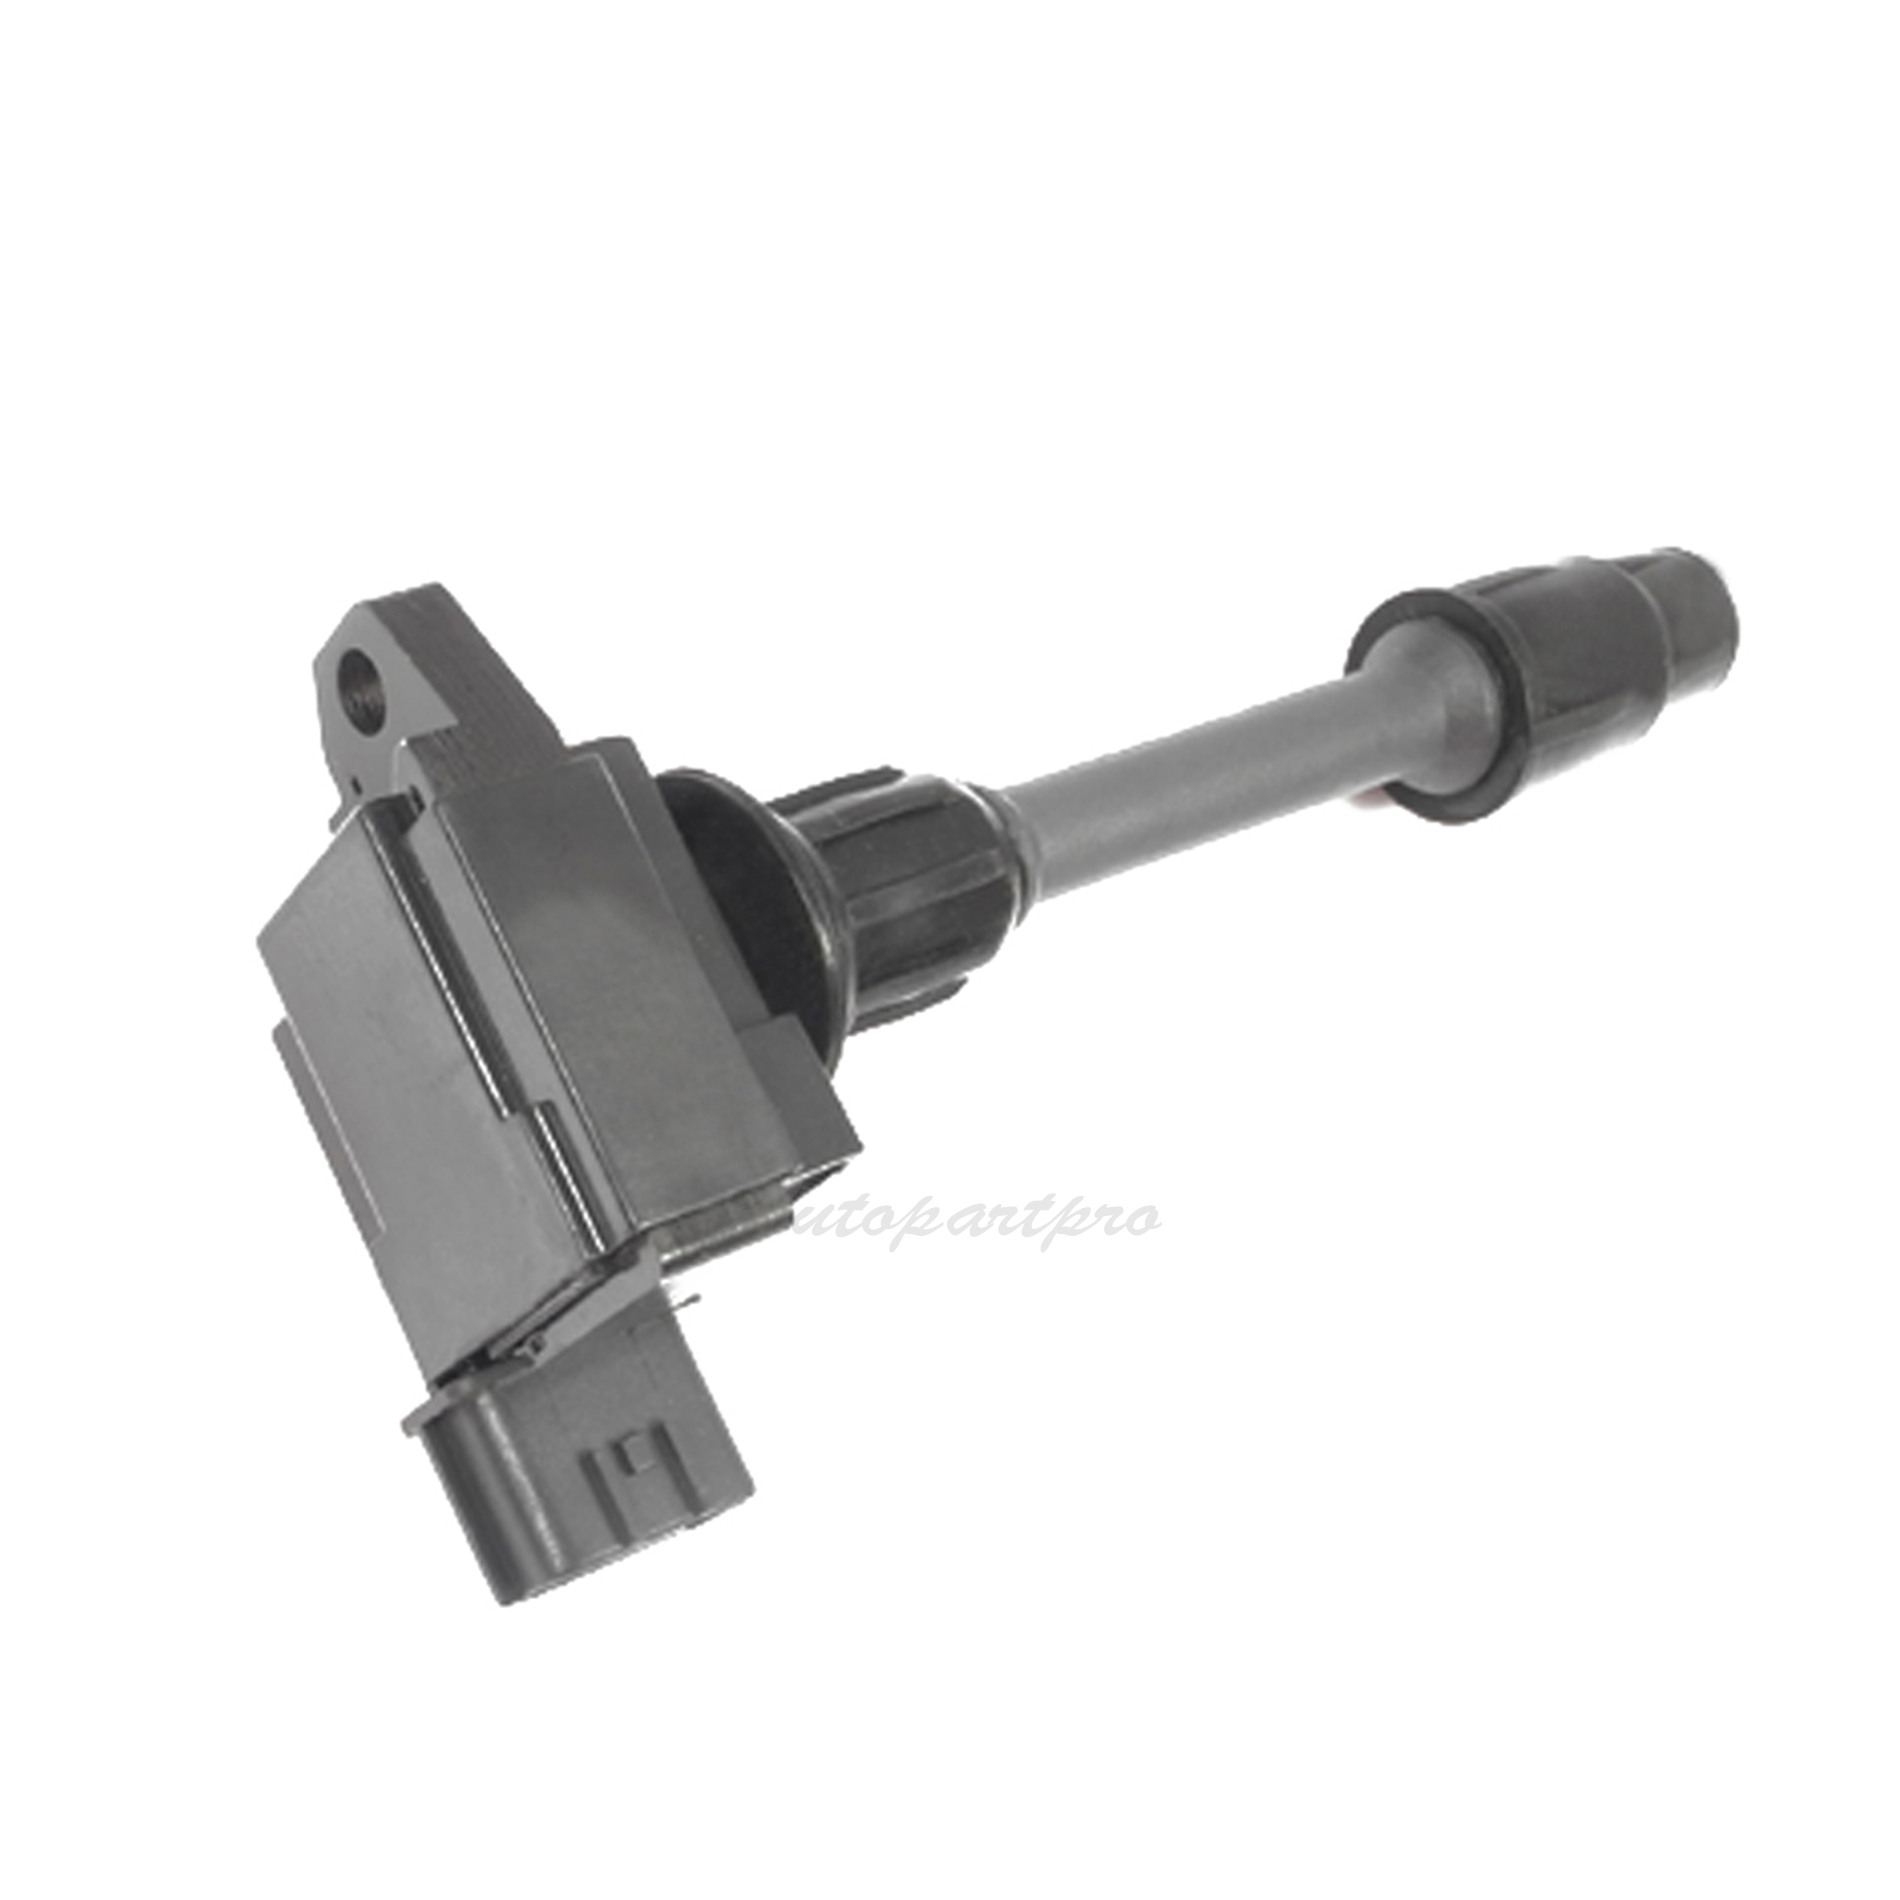 hight resolution of details about b288 for 2000 2001 infiniti i30 nissan maxima left ignition coil 22448 2y005